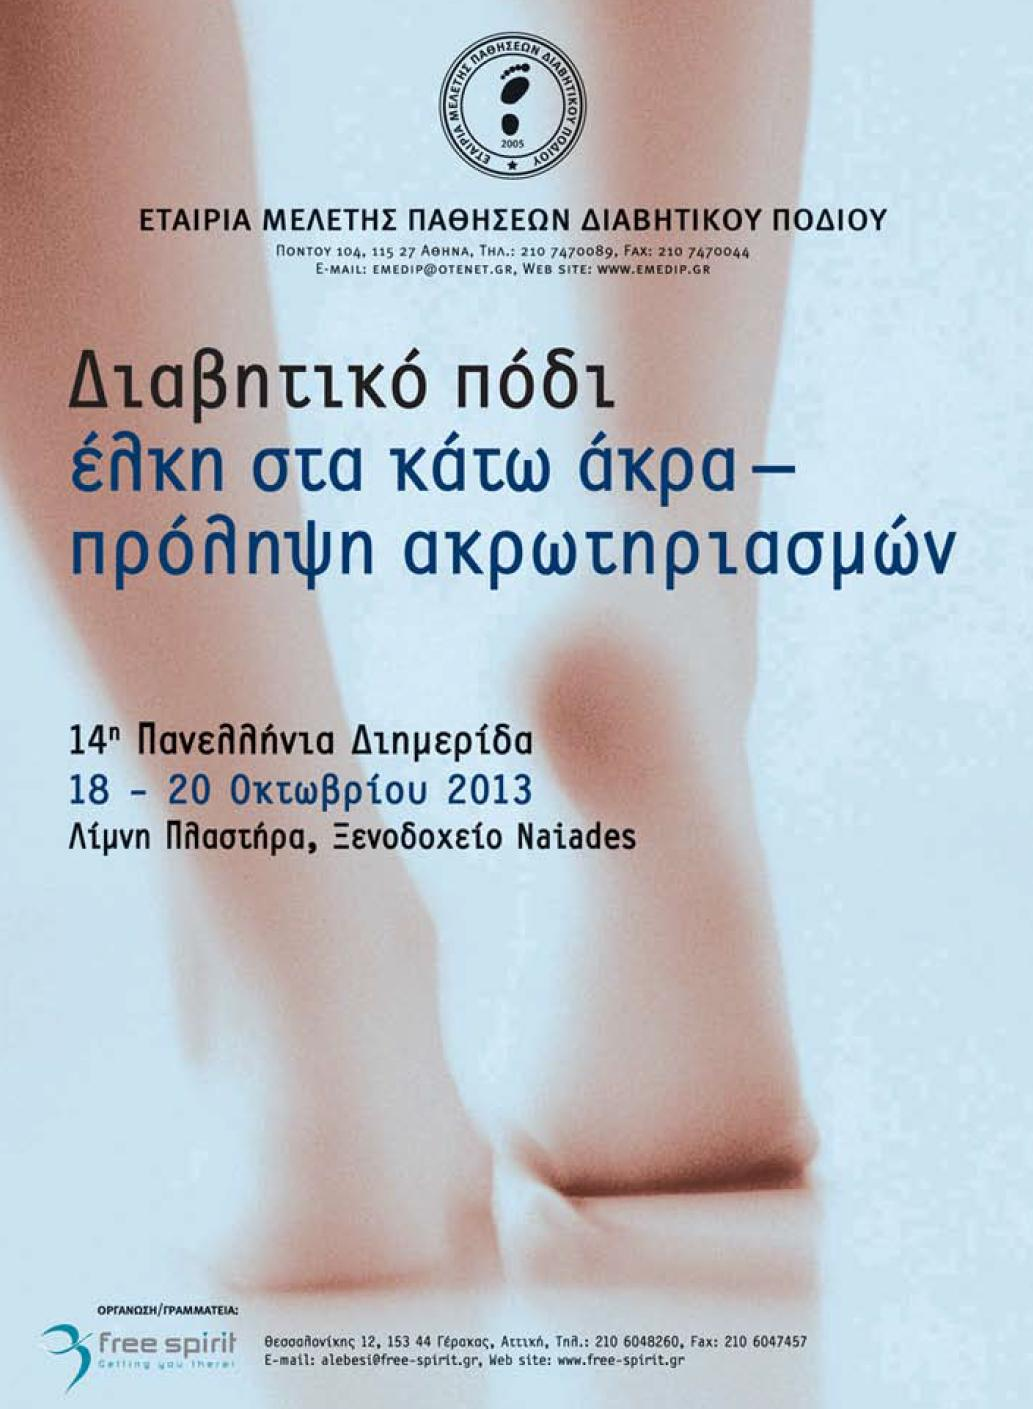 14th Panhellenic Meeting of the Hellenic Association for the Study of Diabetic Foot Disease